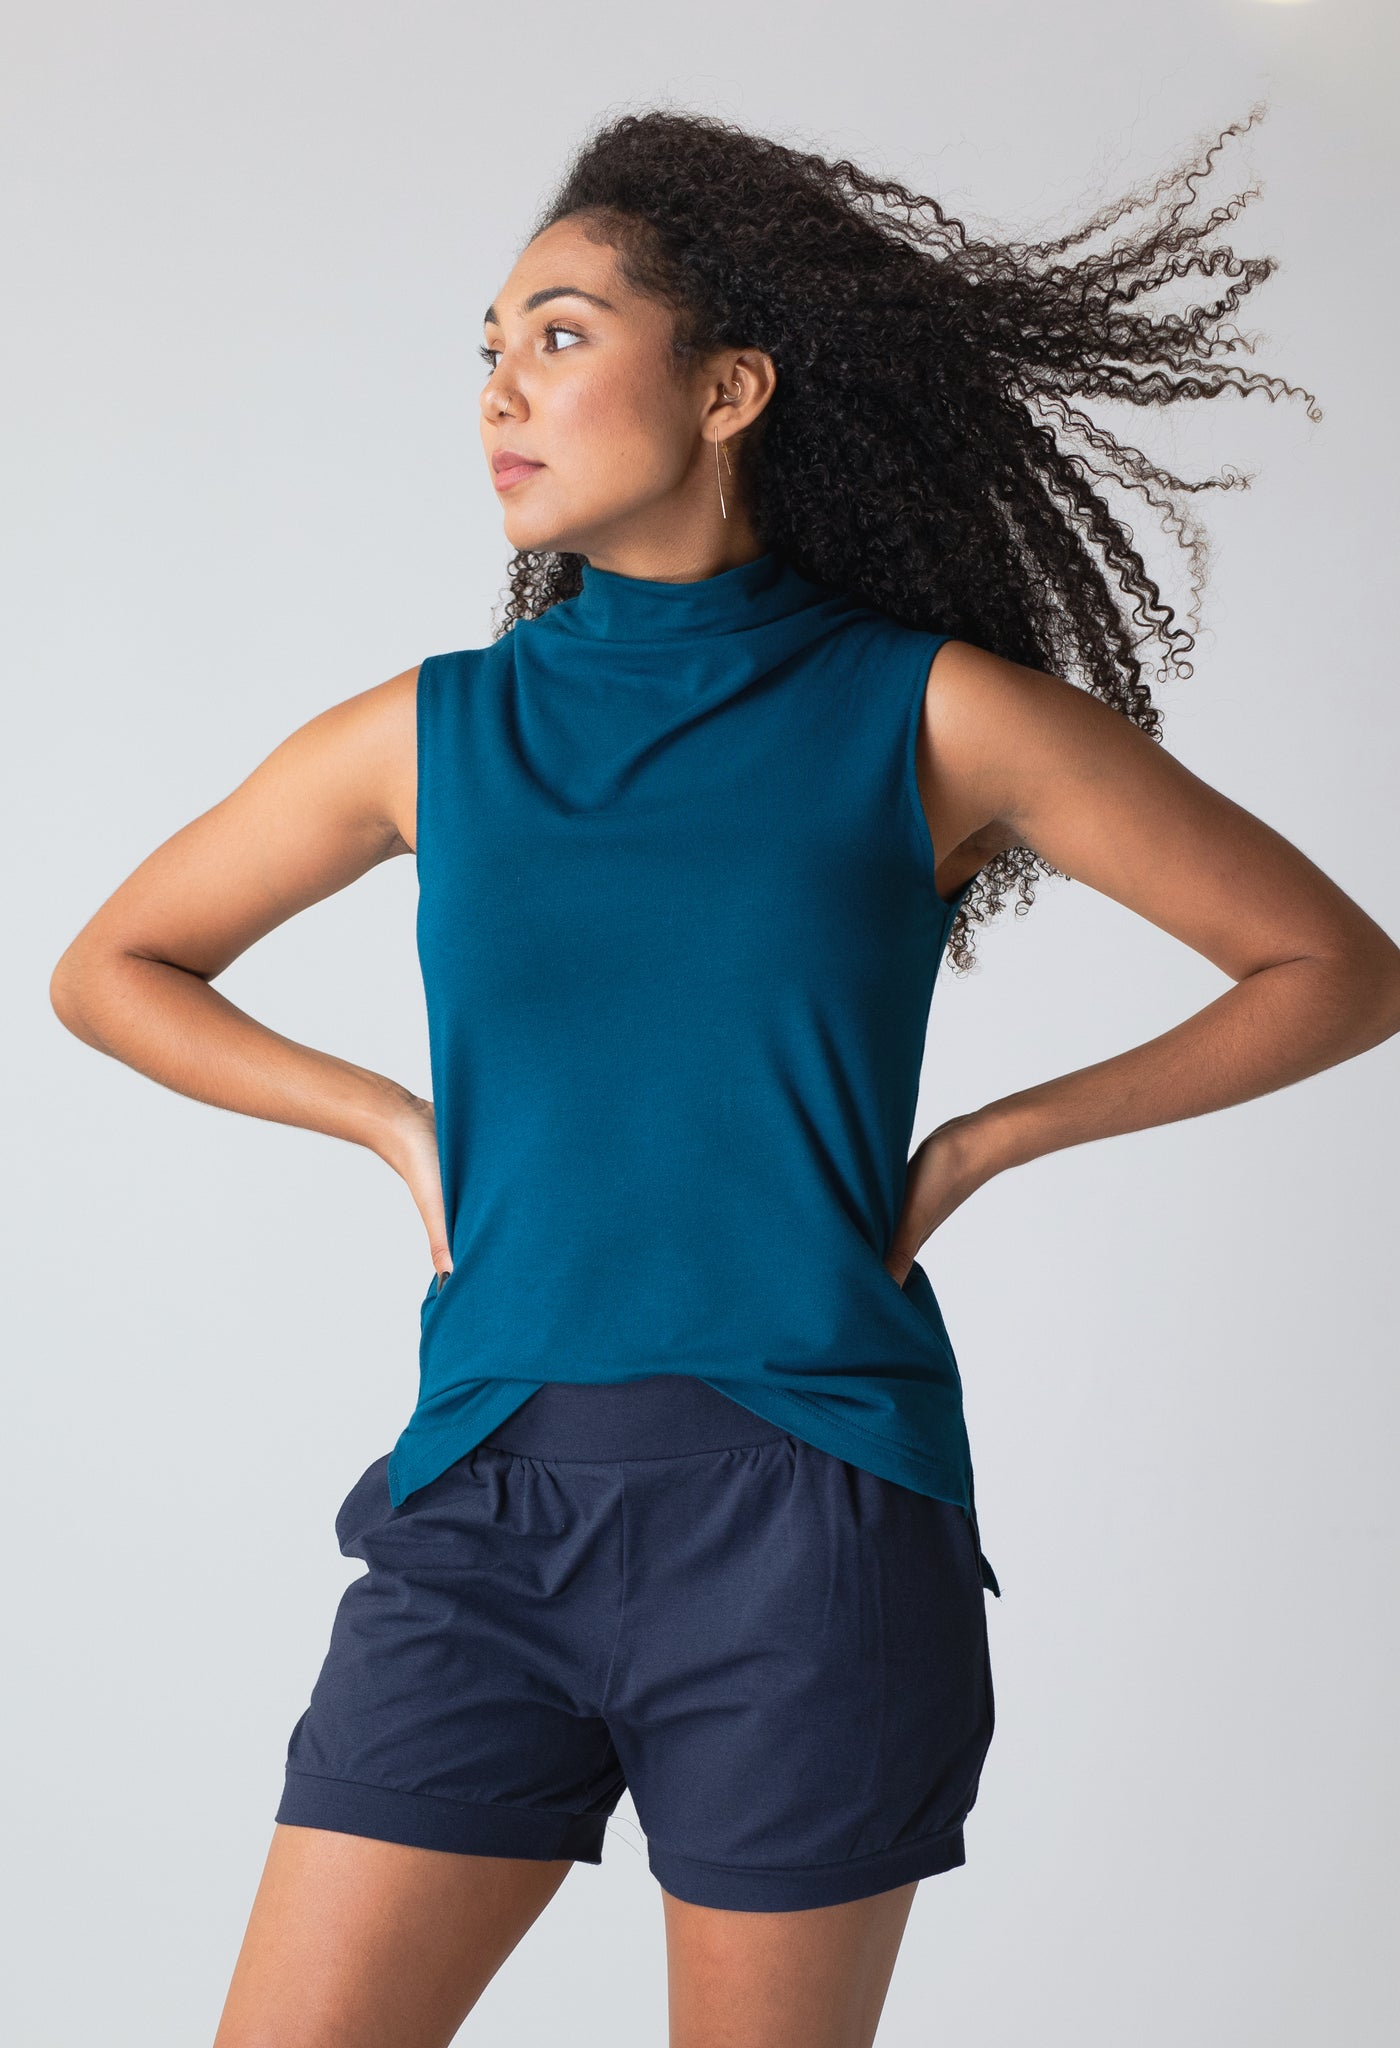 Effortless Sleeveless Top in Peacock with All-Around Shorts in Navy